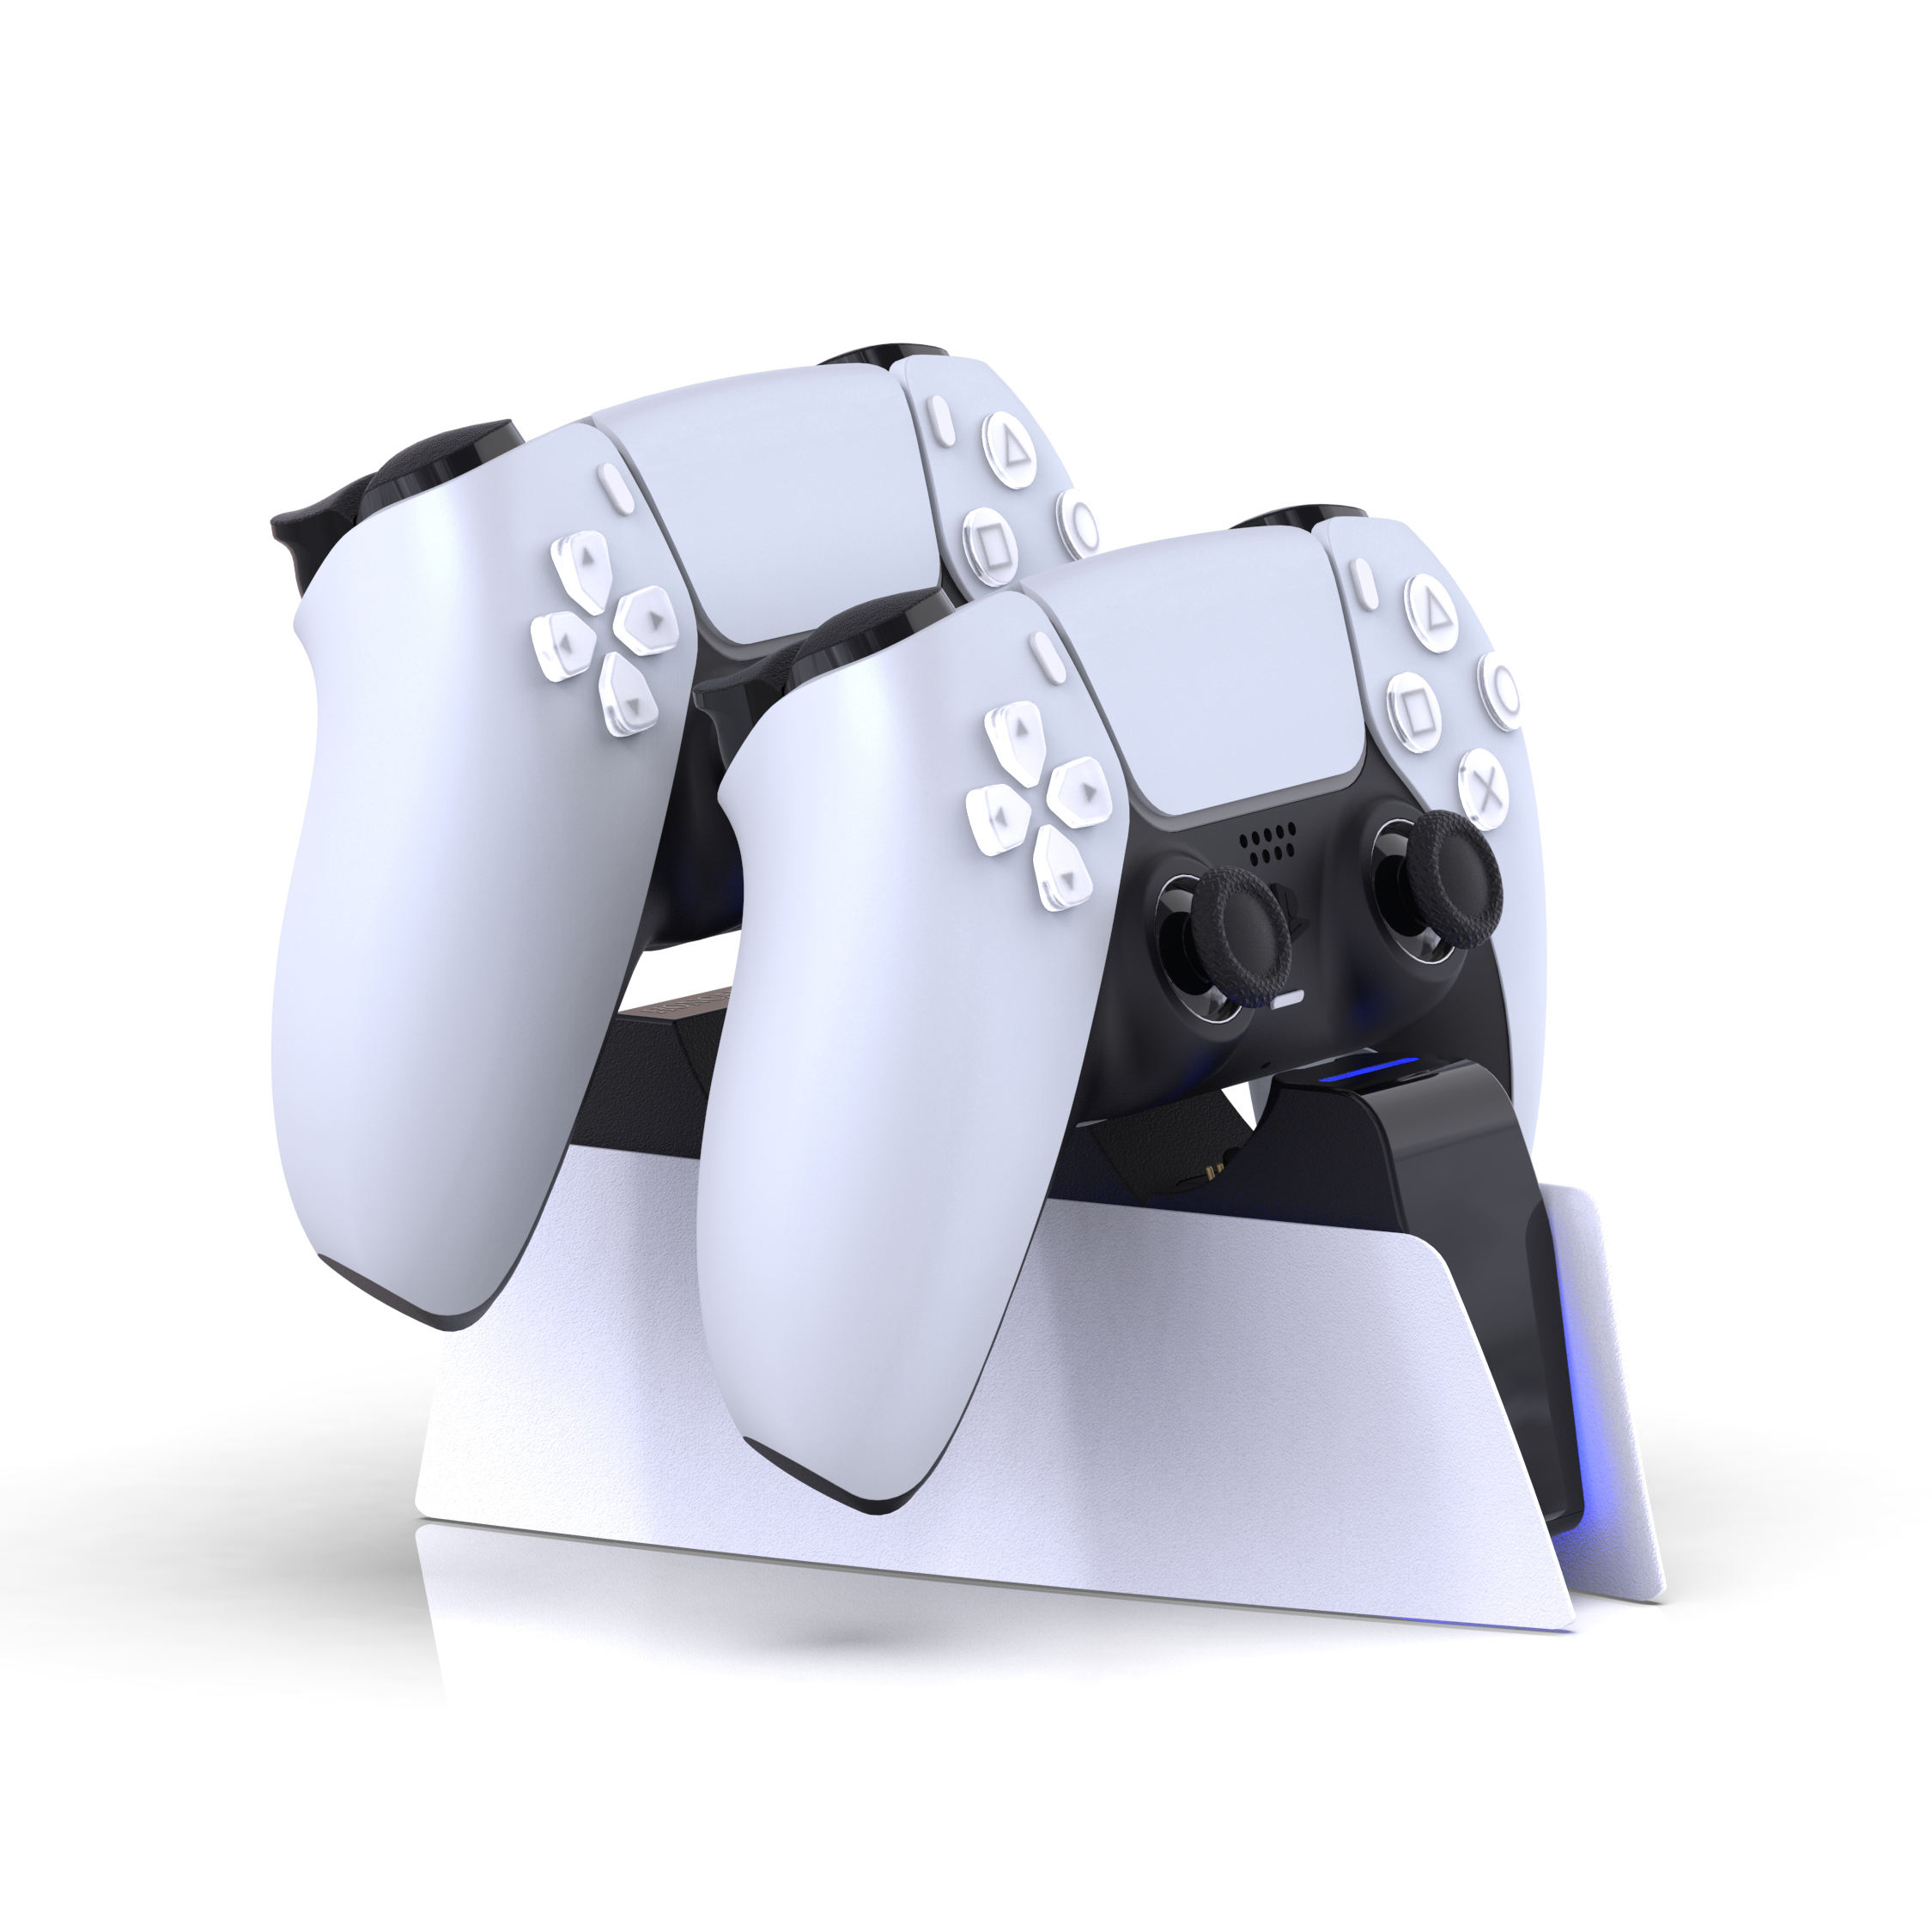 Honcam Klik In Ontwerp Snelle Charger Stand Station Andere Game Accessoires Play Station Voor Playstation 5 Dualsense PS5 Controller